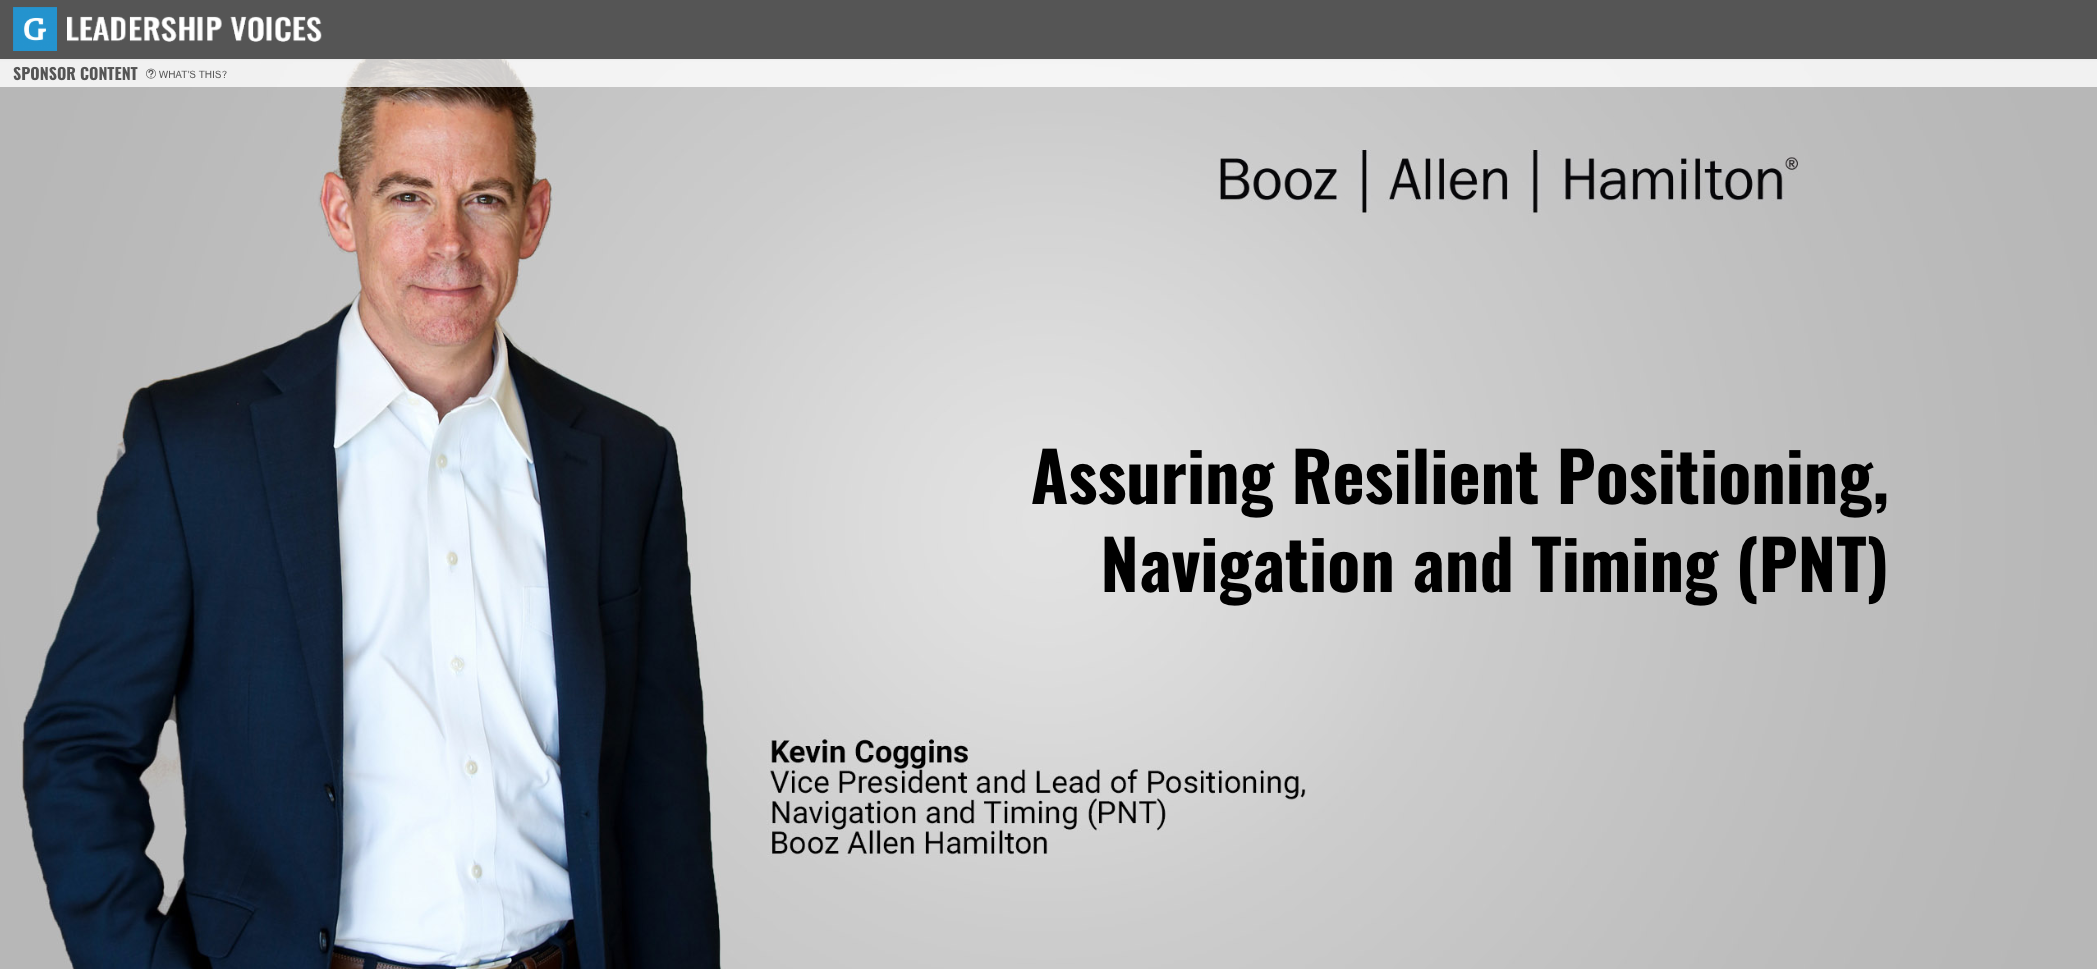 Assuring Resilient Positioning Navigation And Timing Pnt Disruptive Technology Cyber Network Resilience